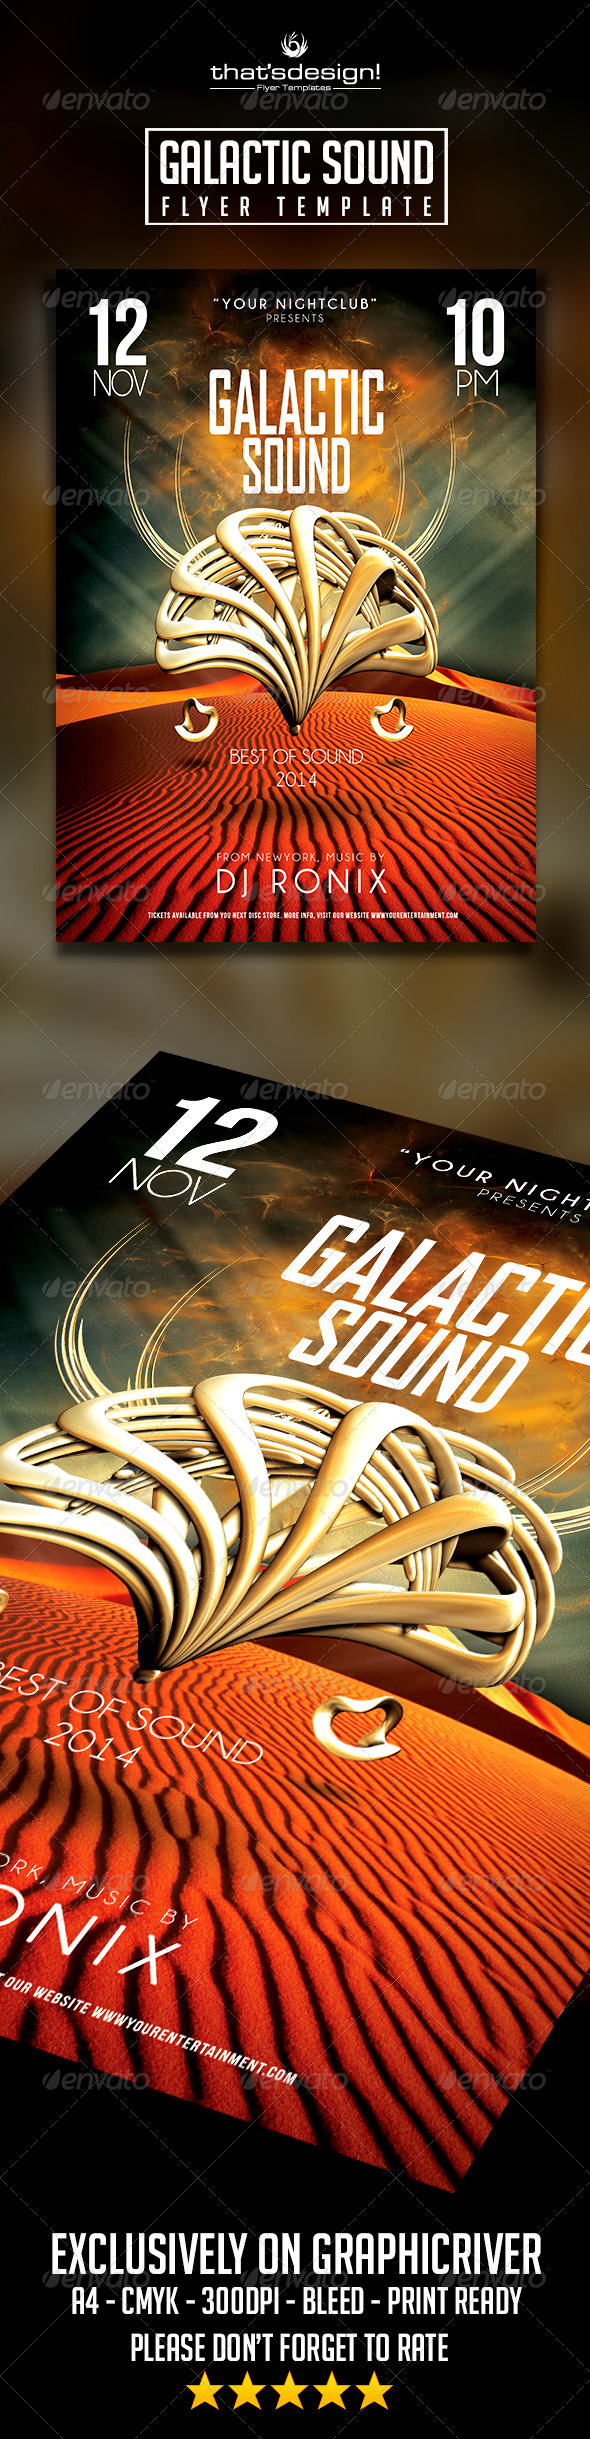 Galactic Sound Flyer - Clubs & Parties Events